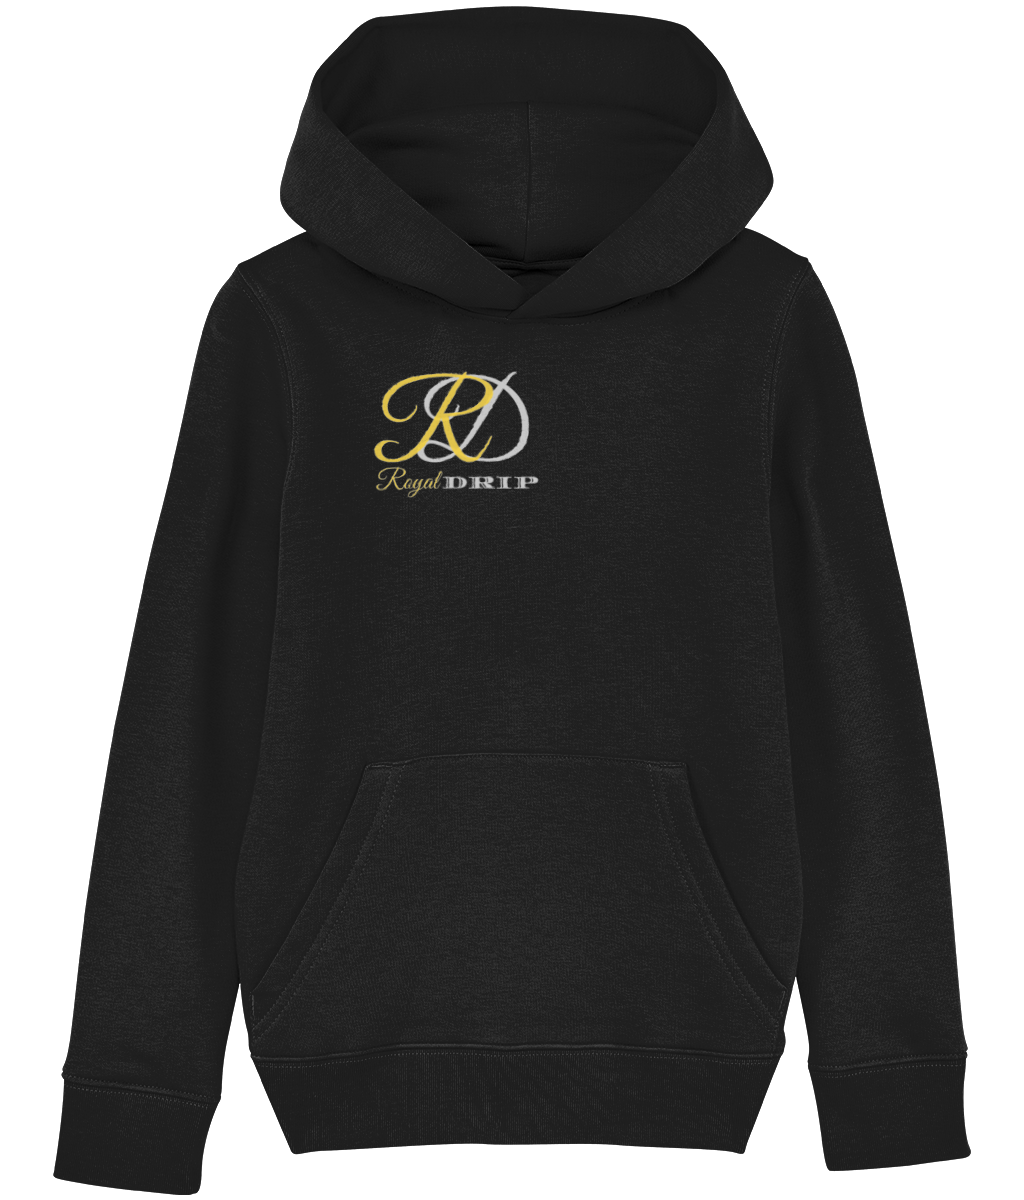 RoyalDrip Signature Kids Hoodie - Small Logo